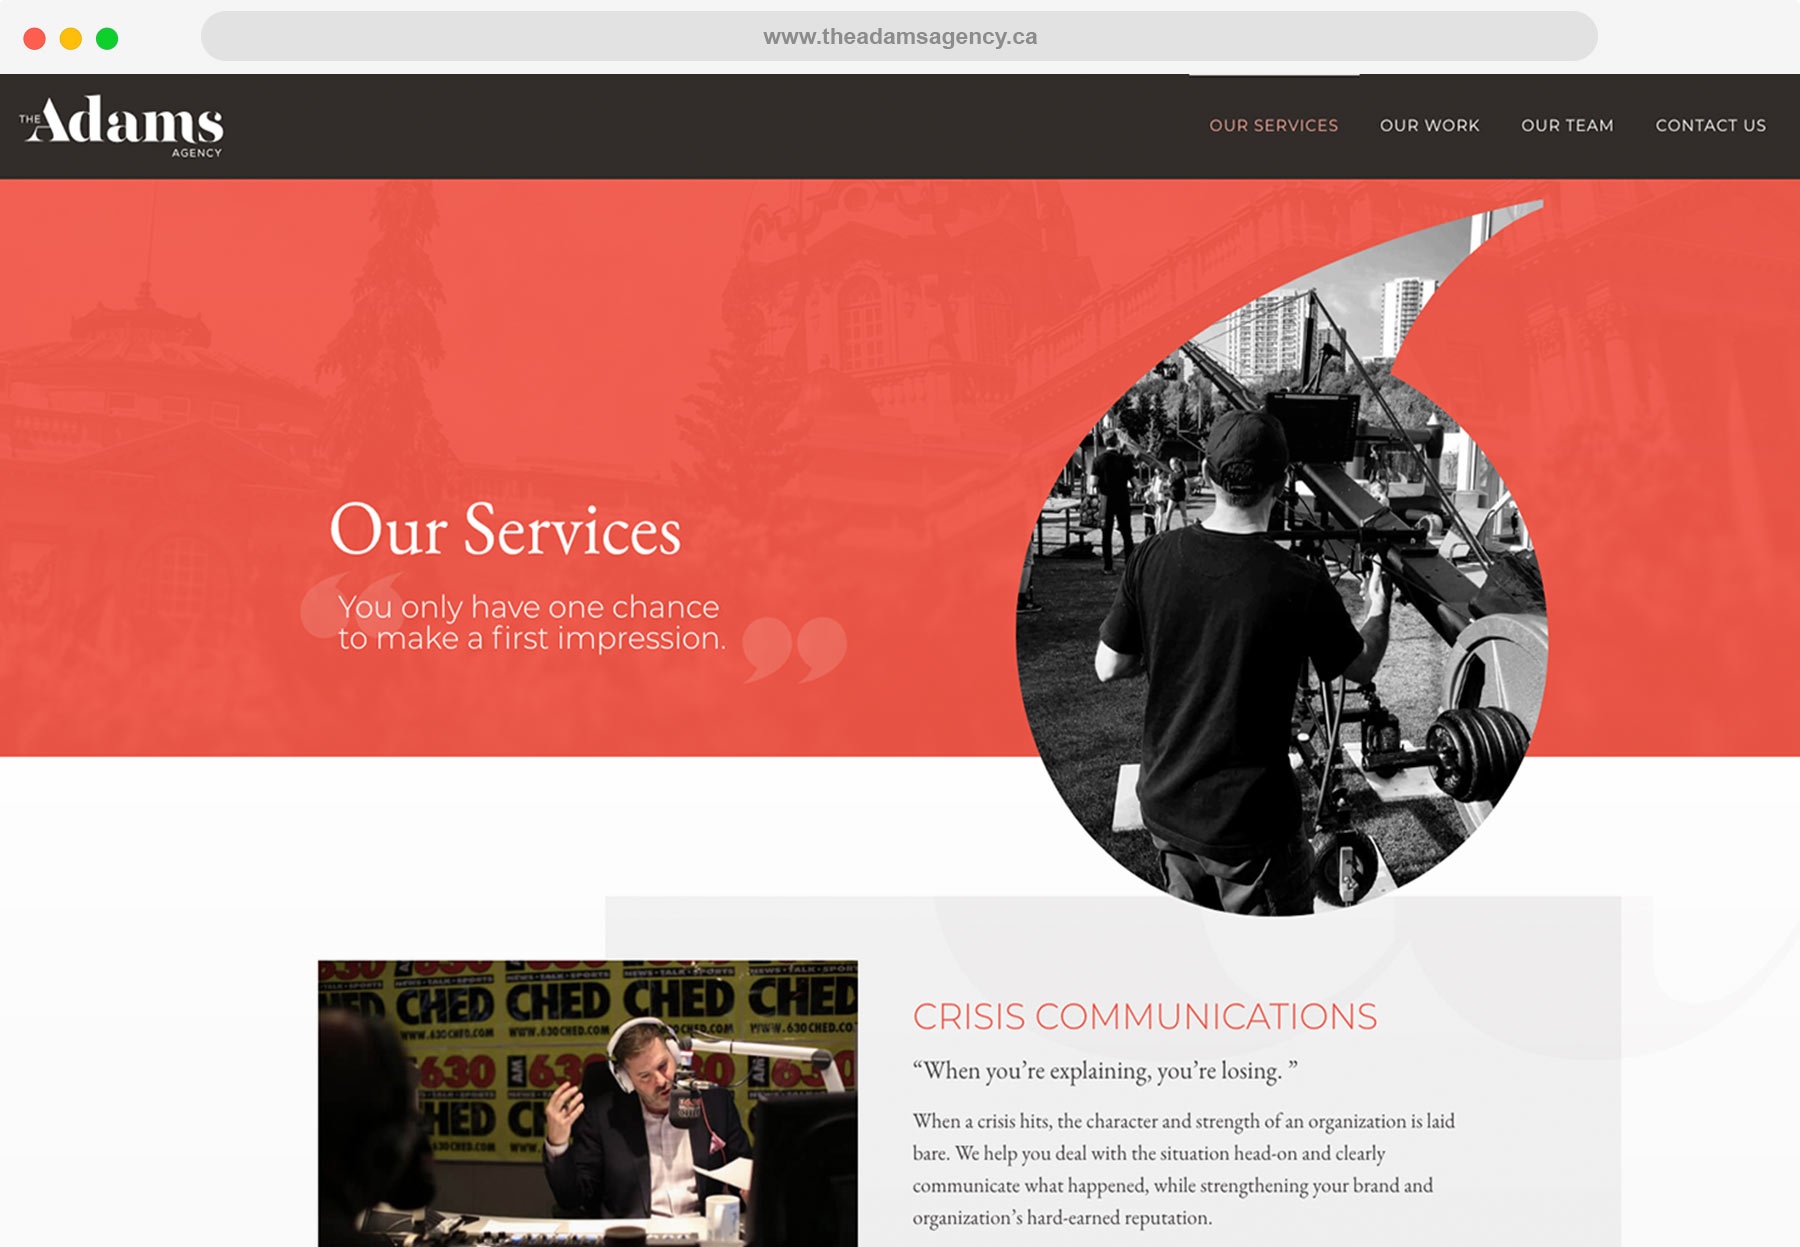 TheAdamsAgency Safari SIZED Services1